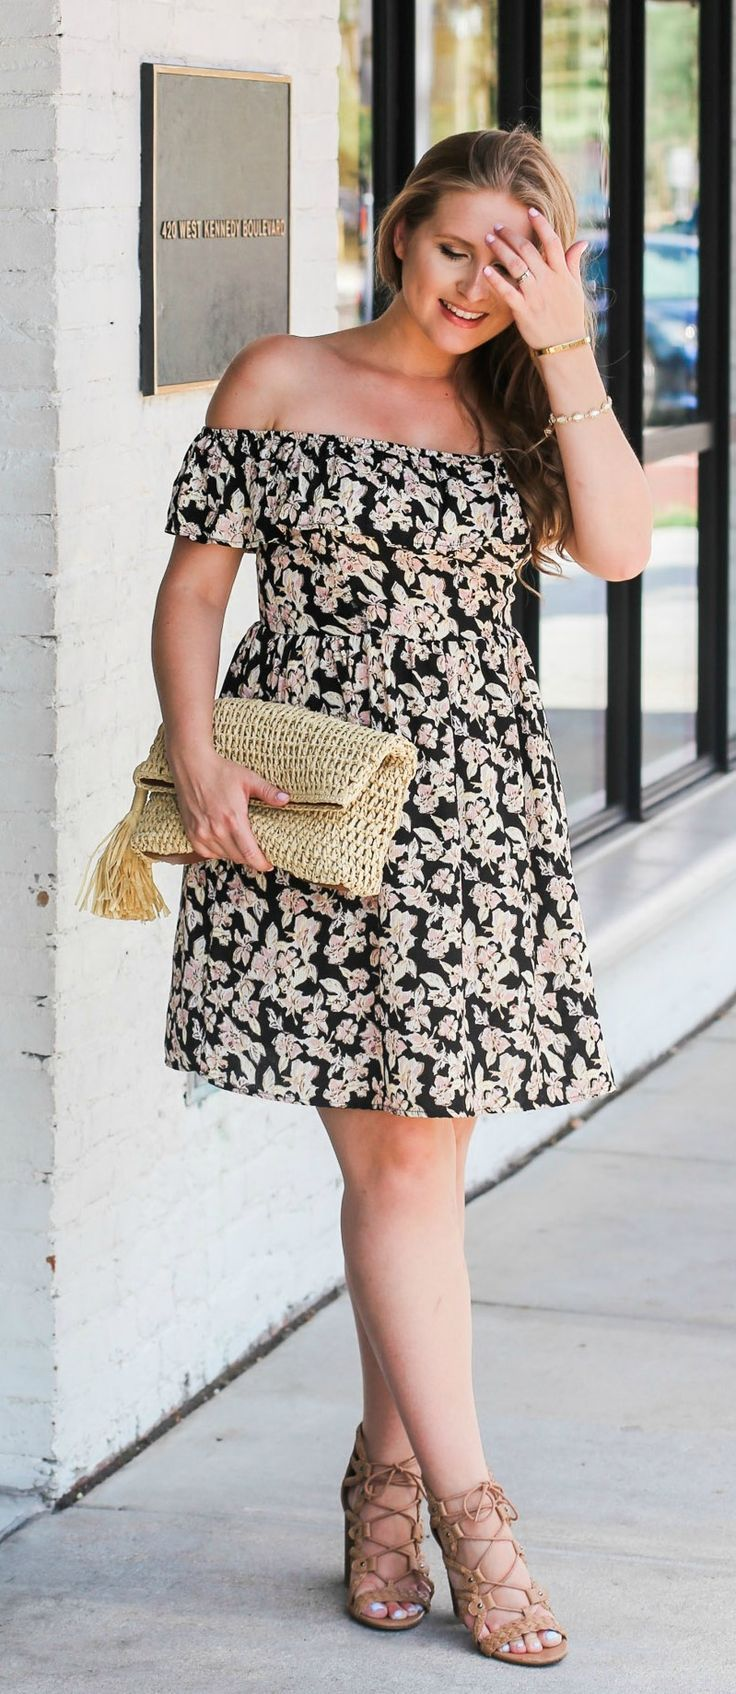 e0ca451d04480 Loving this affordable floral dress for summer can you believe this fit and  flare sun jpg